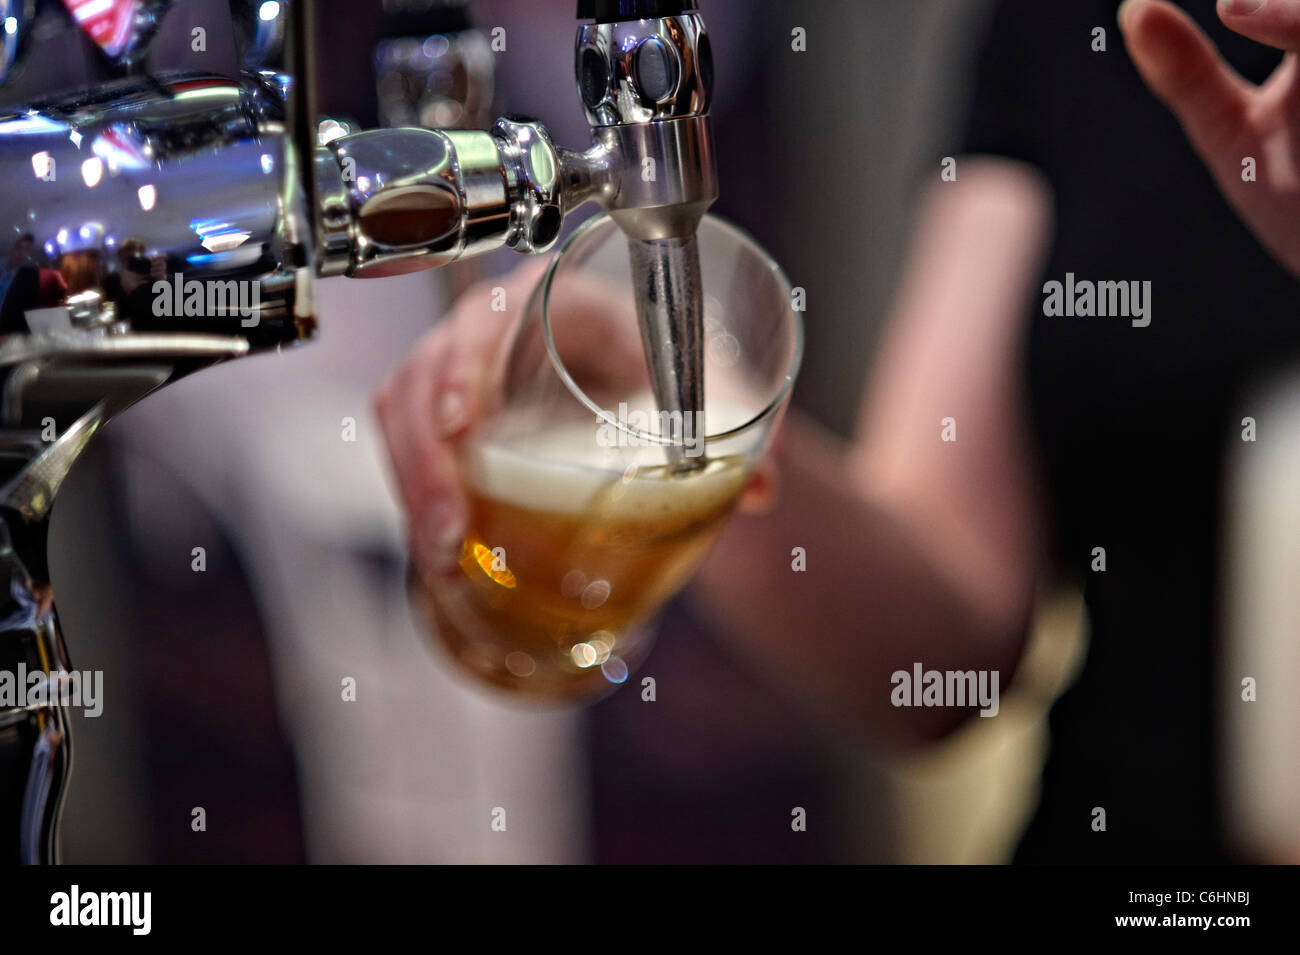 pouring a beer - Stock Image